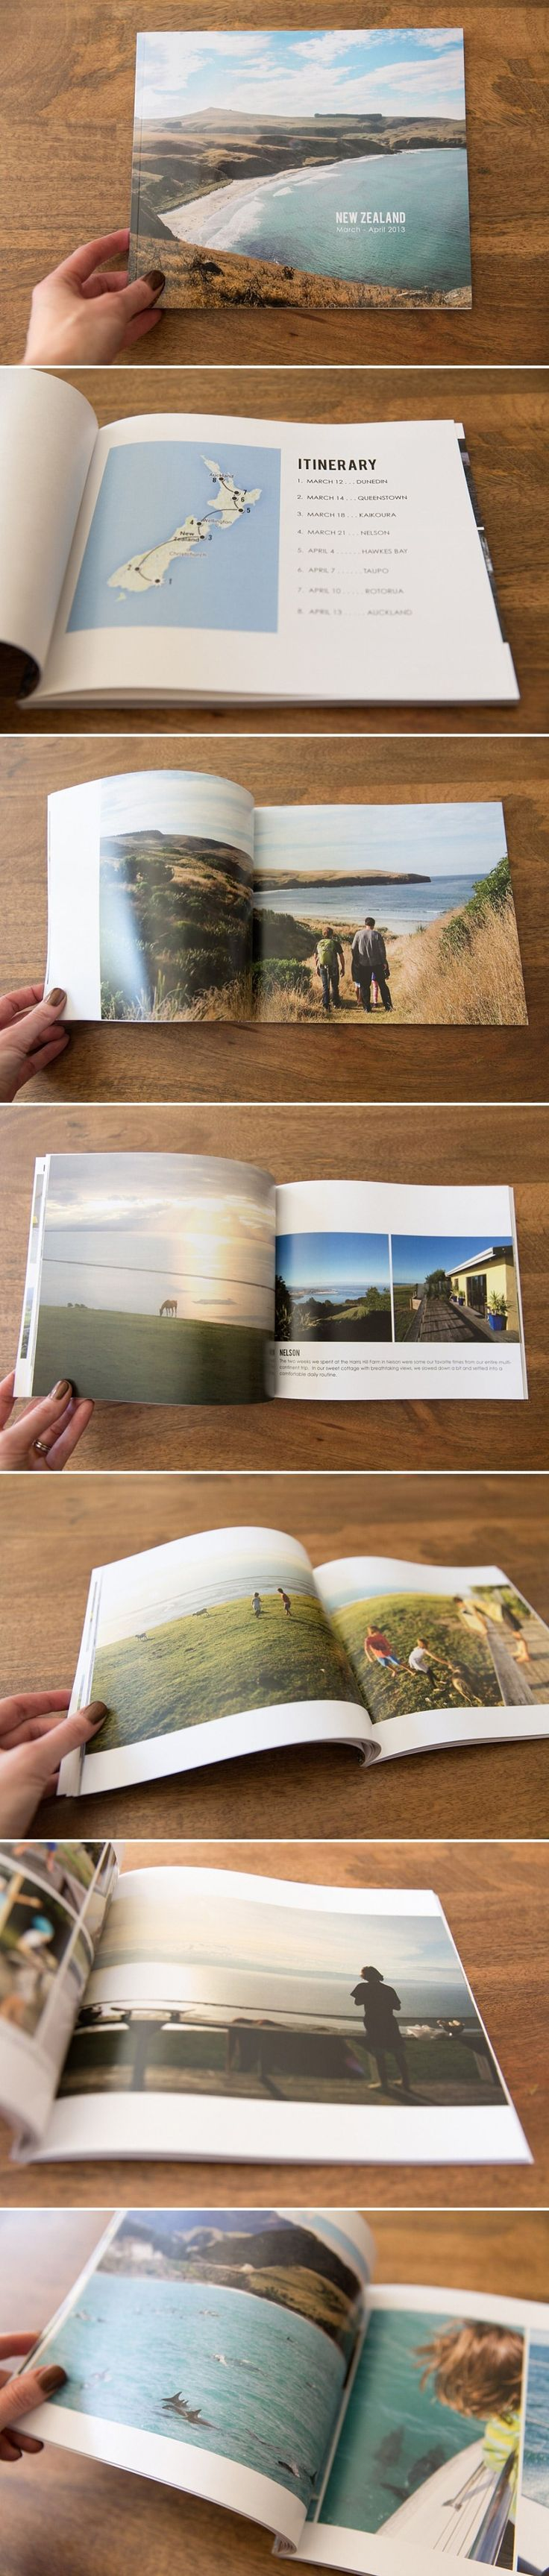 Great Ways To Remember Your Trip 1- photo book